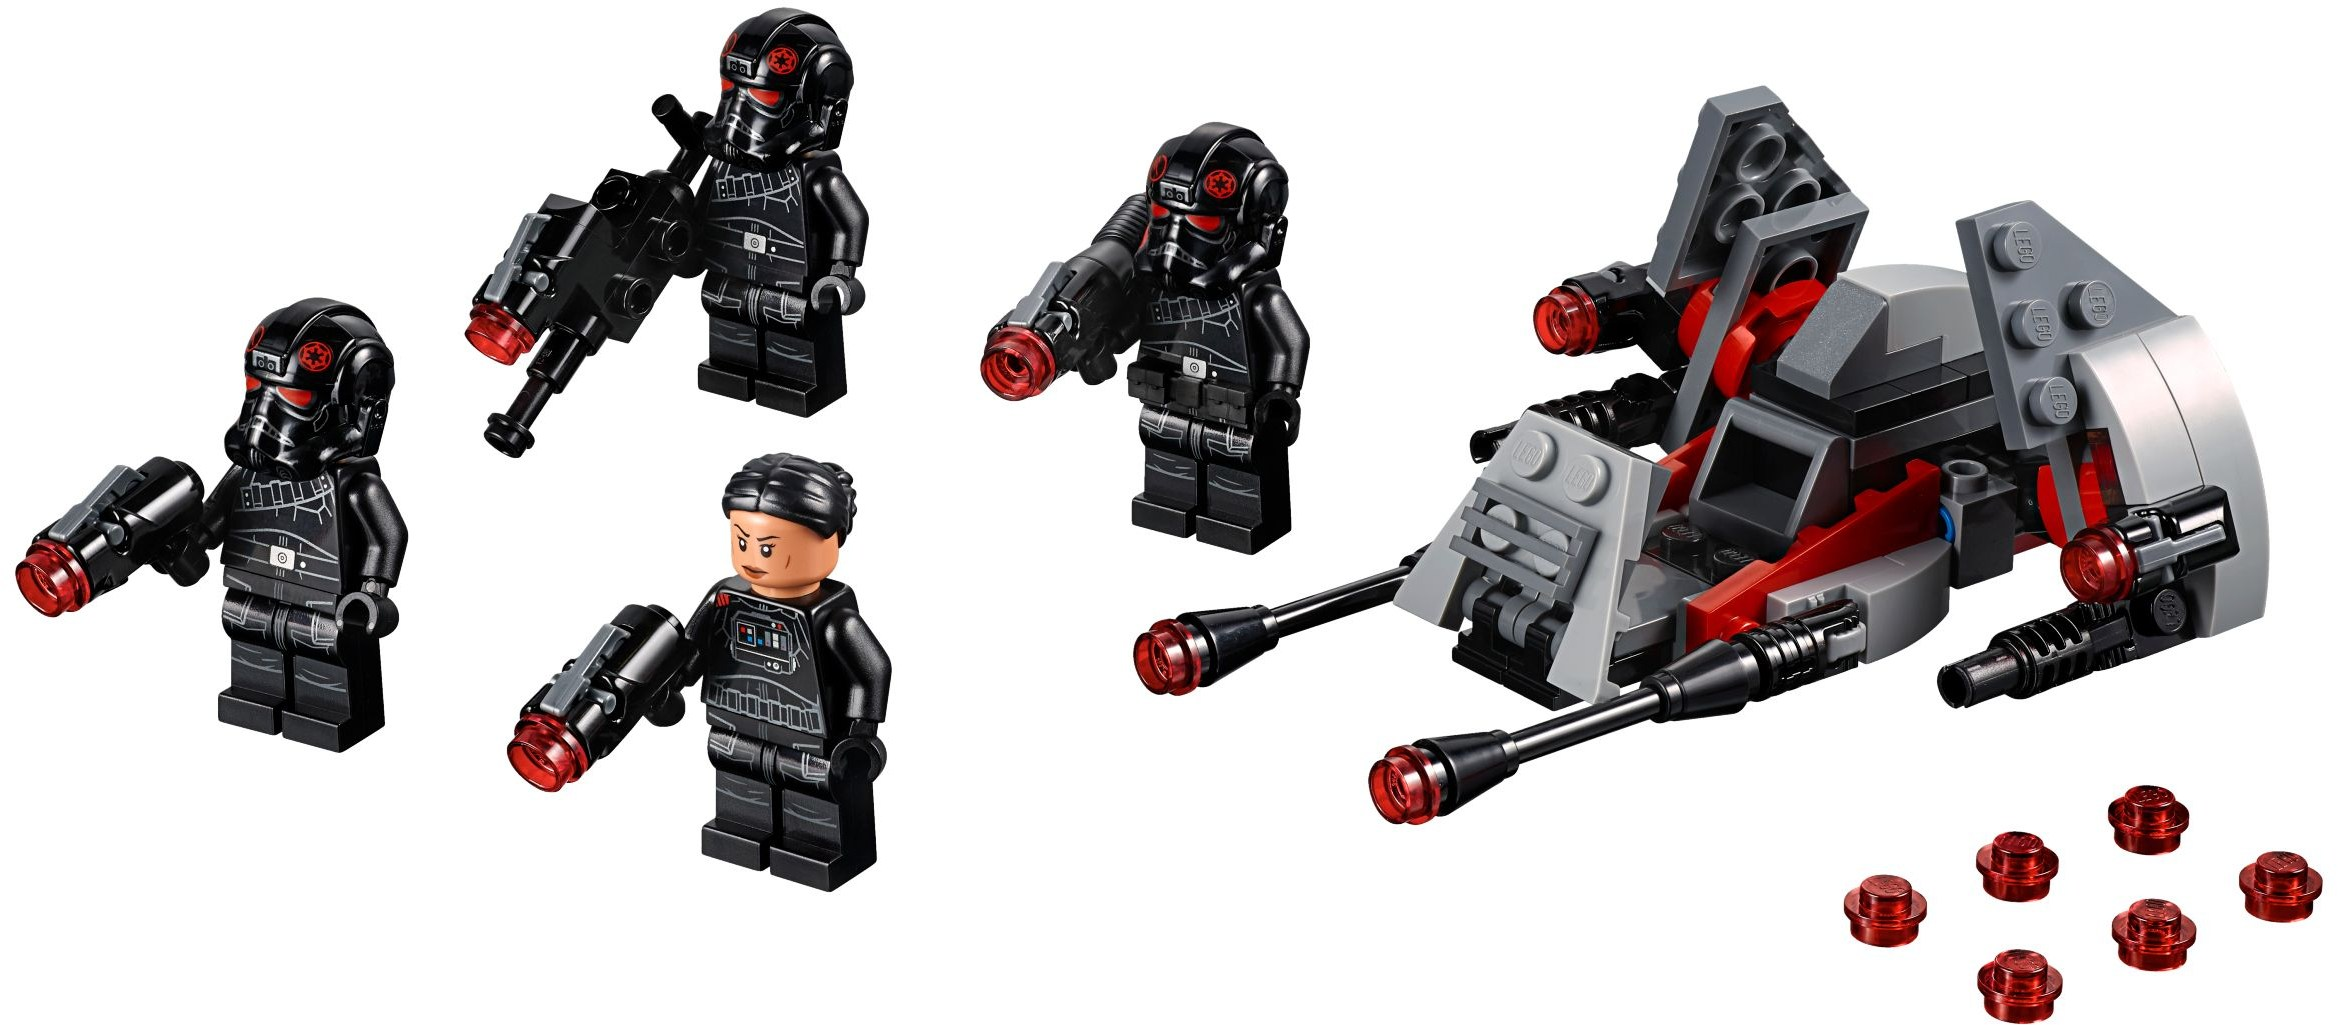 2019 Star Wars Official Images Brickset Lego Set Guide And Database